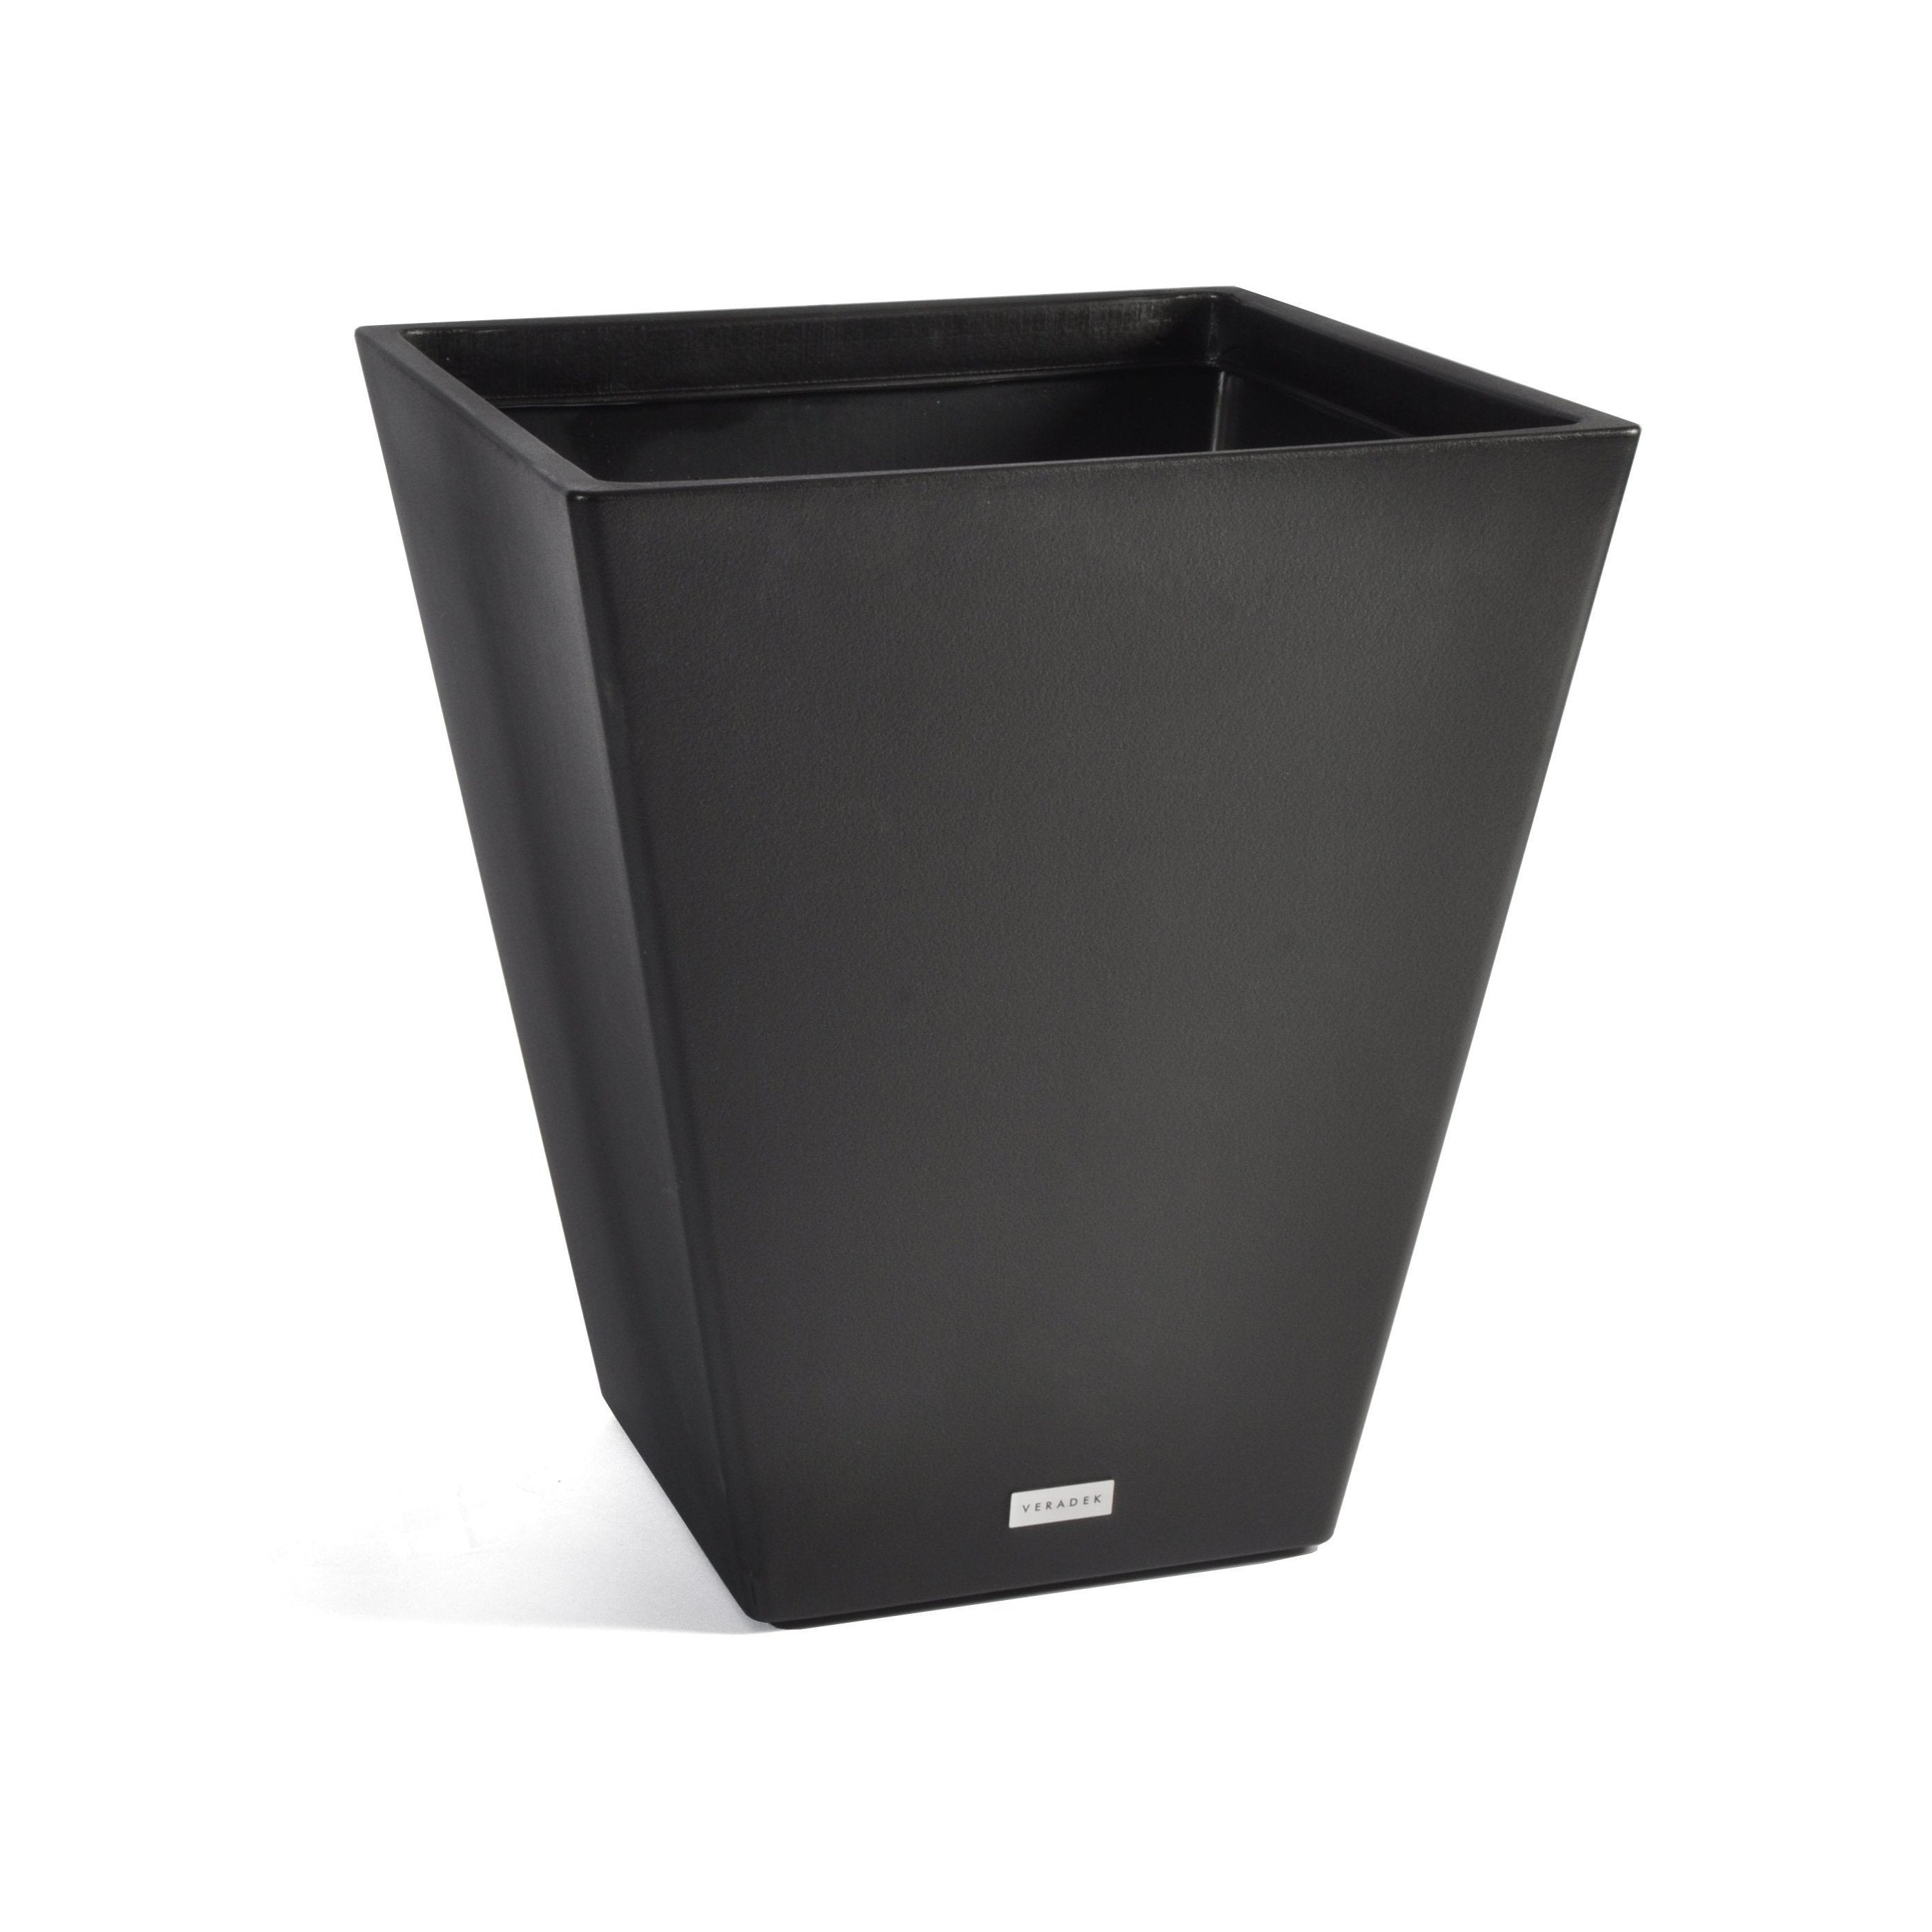 V-Resin Taper Plastic Planter, Modern Planter, Light weight planter, Veradek, indoor and outdoor, self-watering